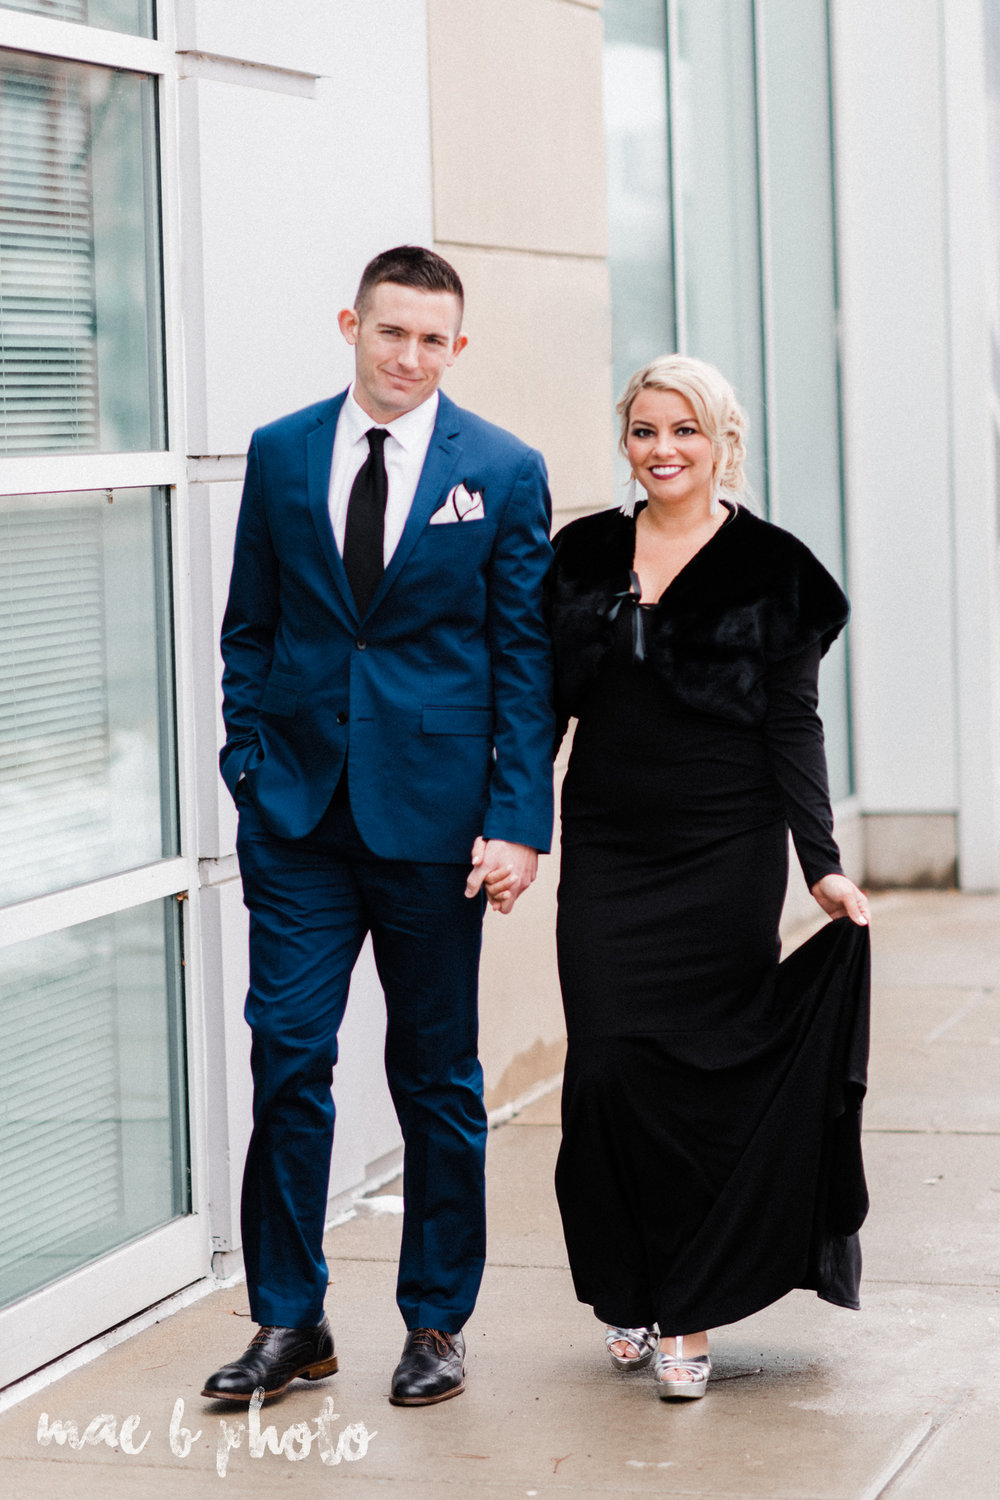 paige and cale's personalized winter glam engagement session at the butler institute of american art and downtown youngstown in youngstown ohio photographed by youngstown wedding photographer mae b photo-21.jpg